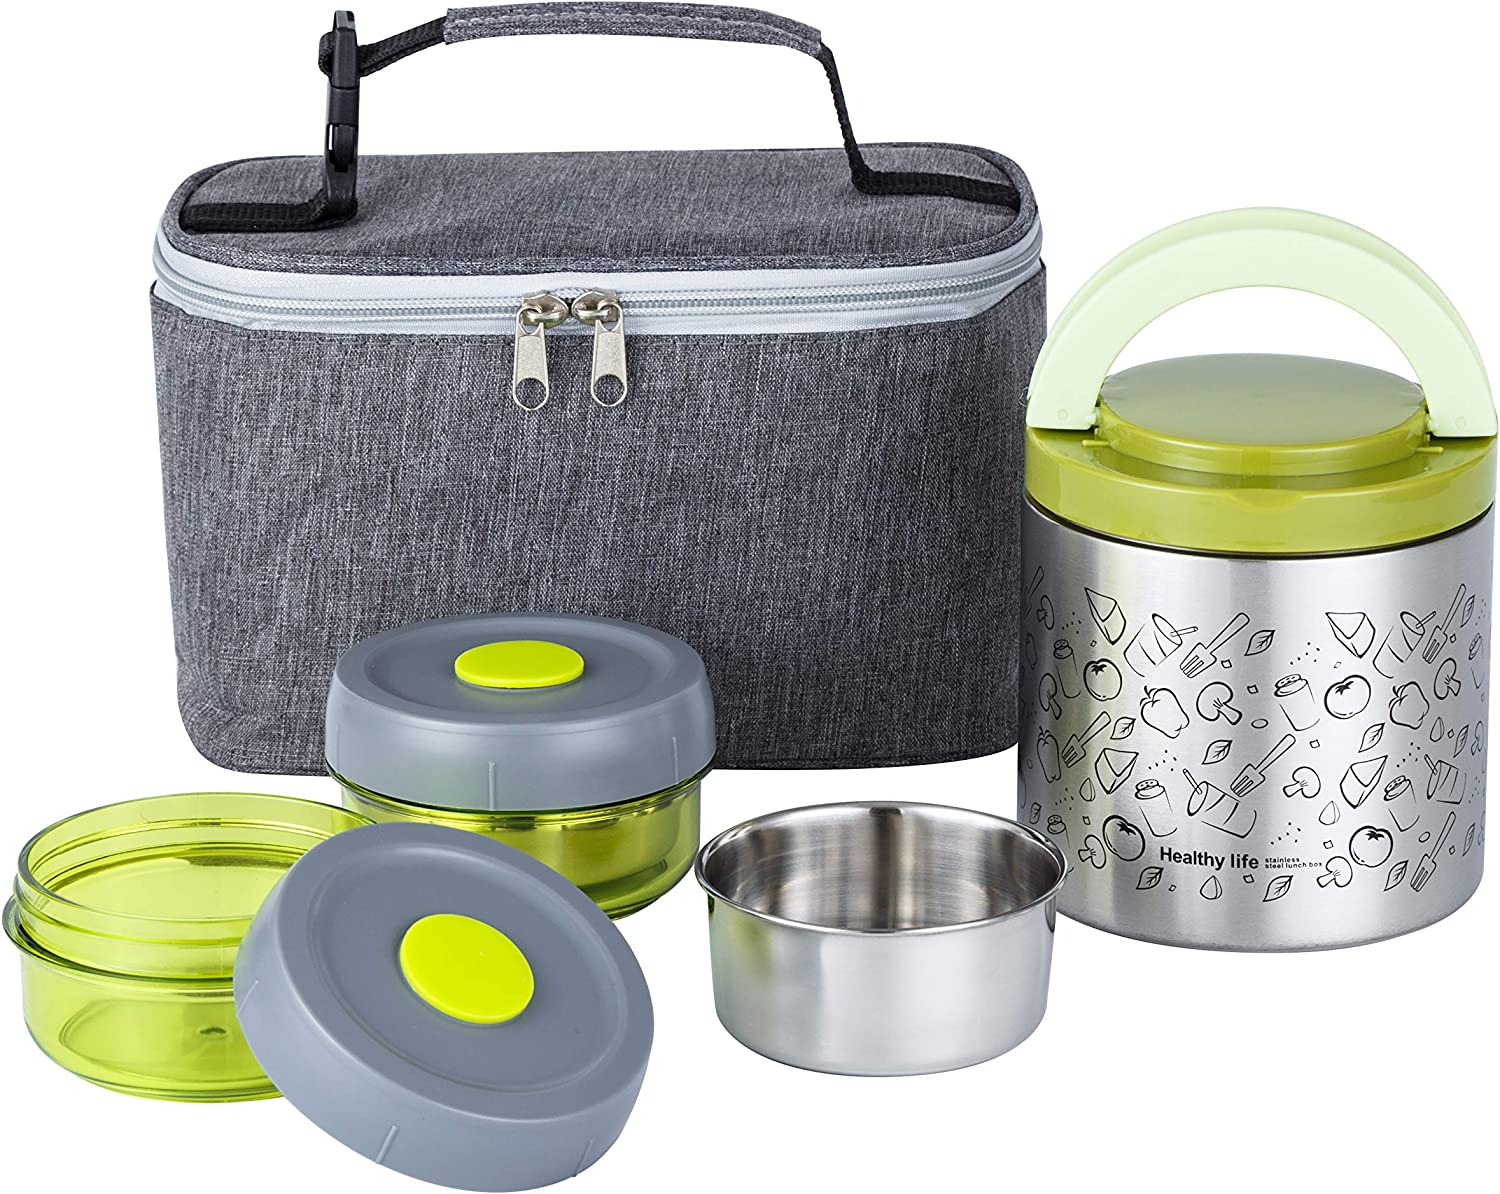 Lille Home Lunch Box Set, An Vacuum Insulated Lunch Box Keeping Food Warm for 4-6 Hours, Two BPA-Free Food Containers, A Lunch Bag (Green)